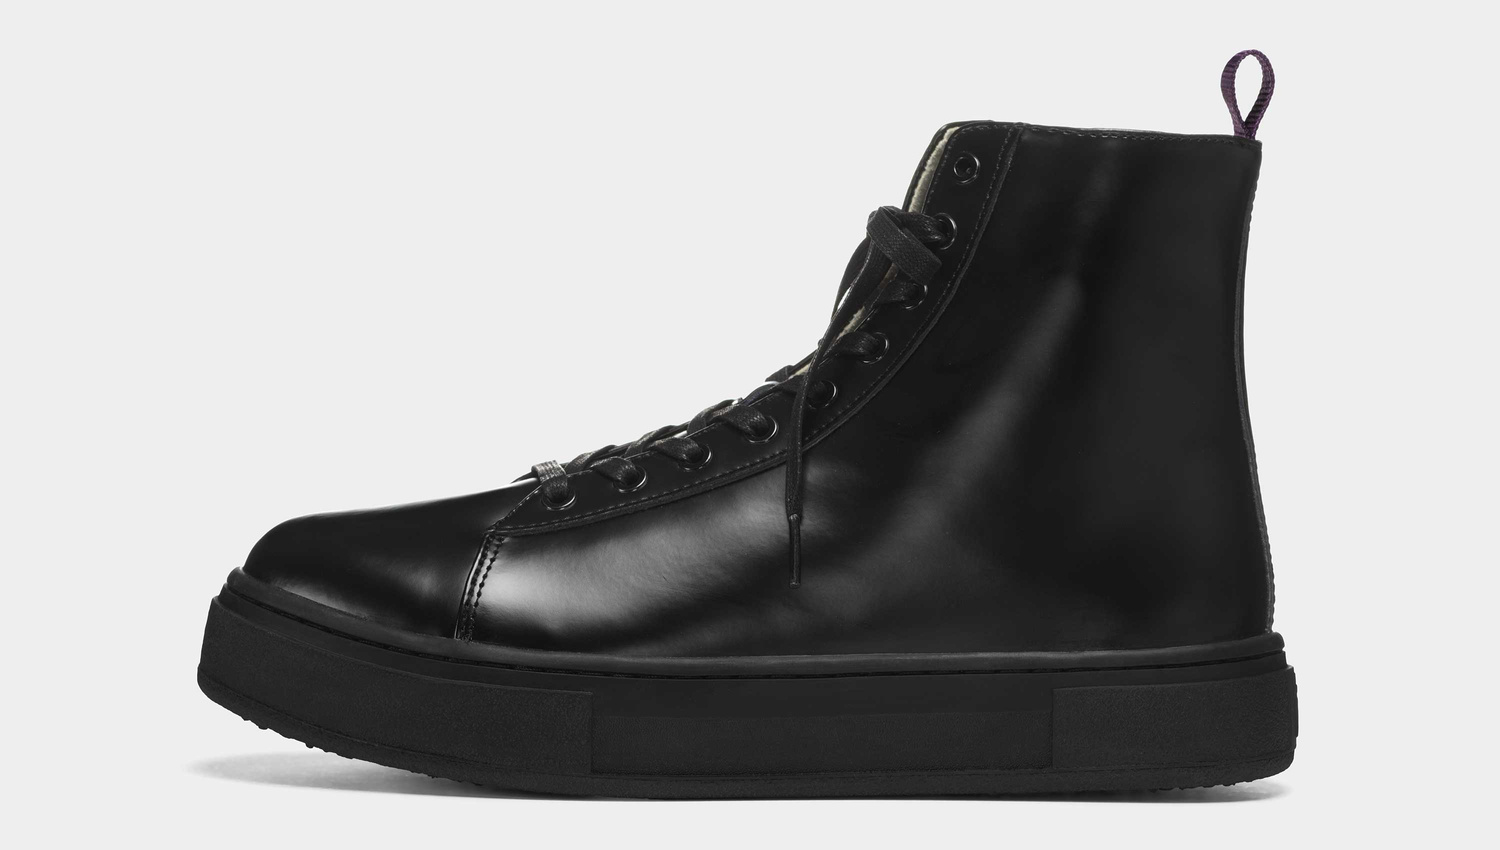 Eytys Kibo Leather All black